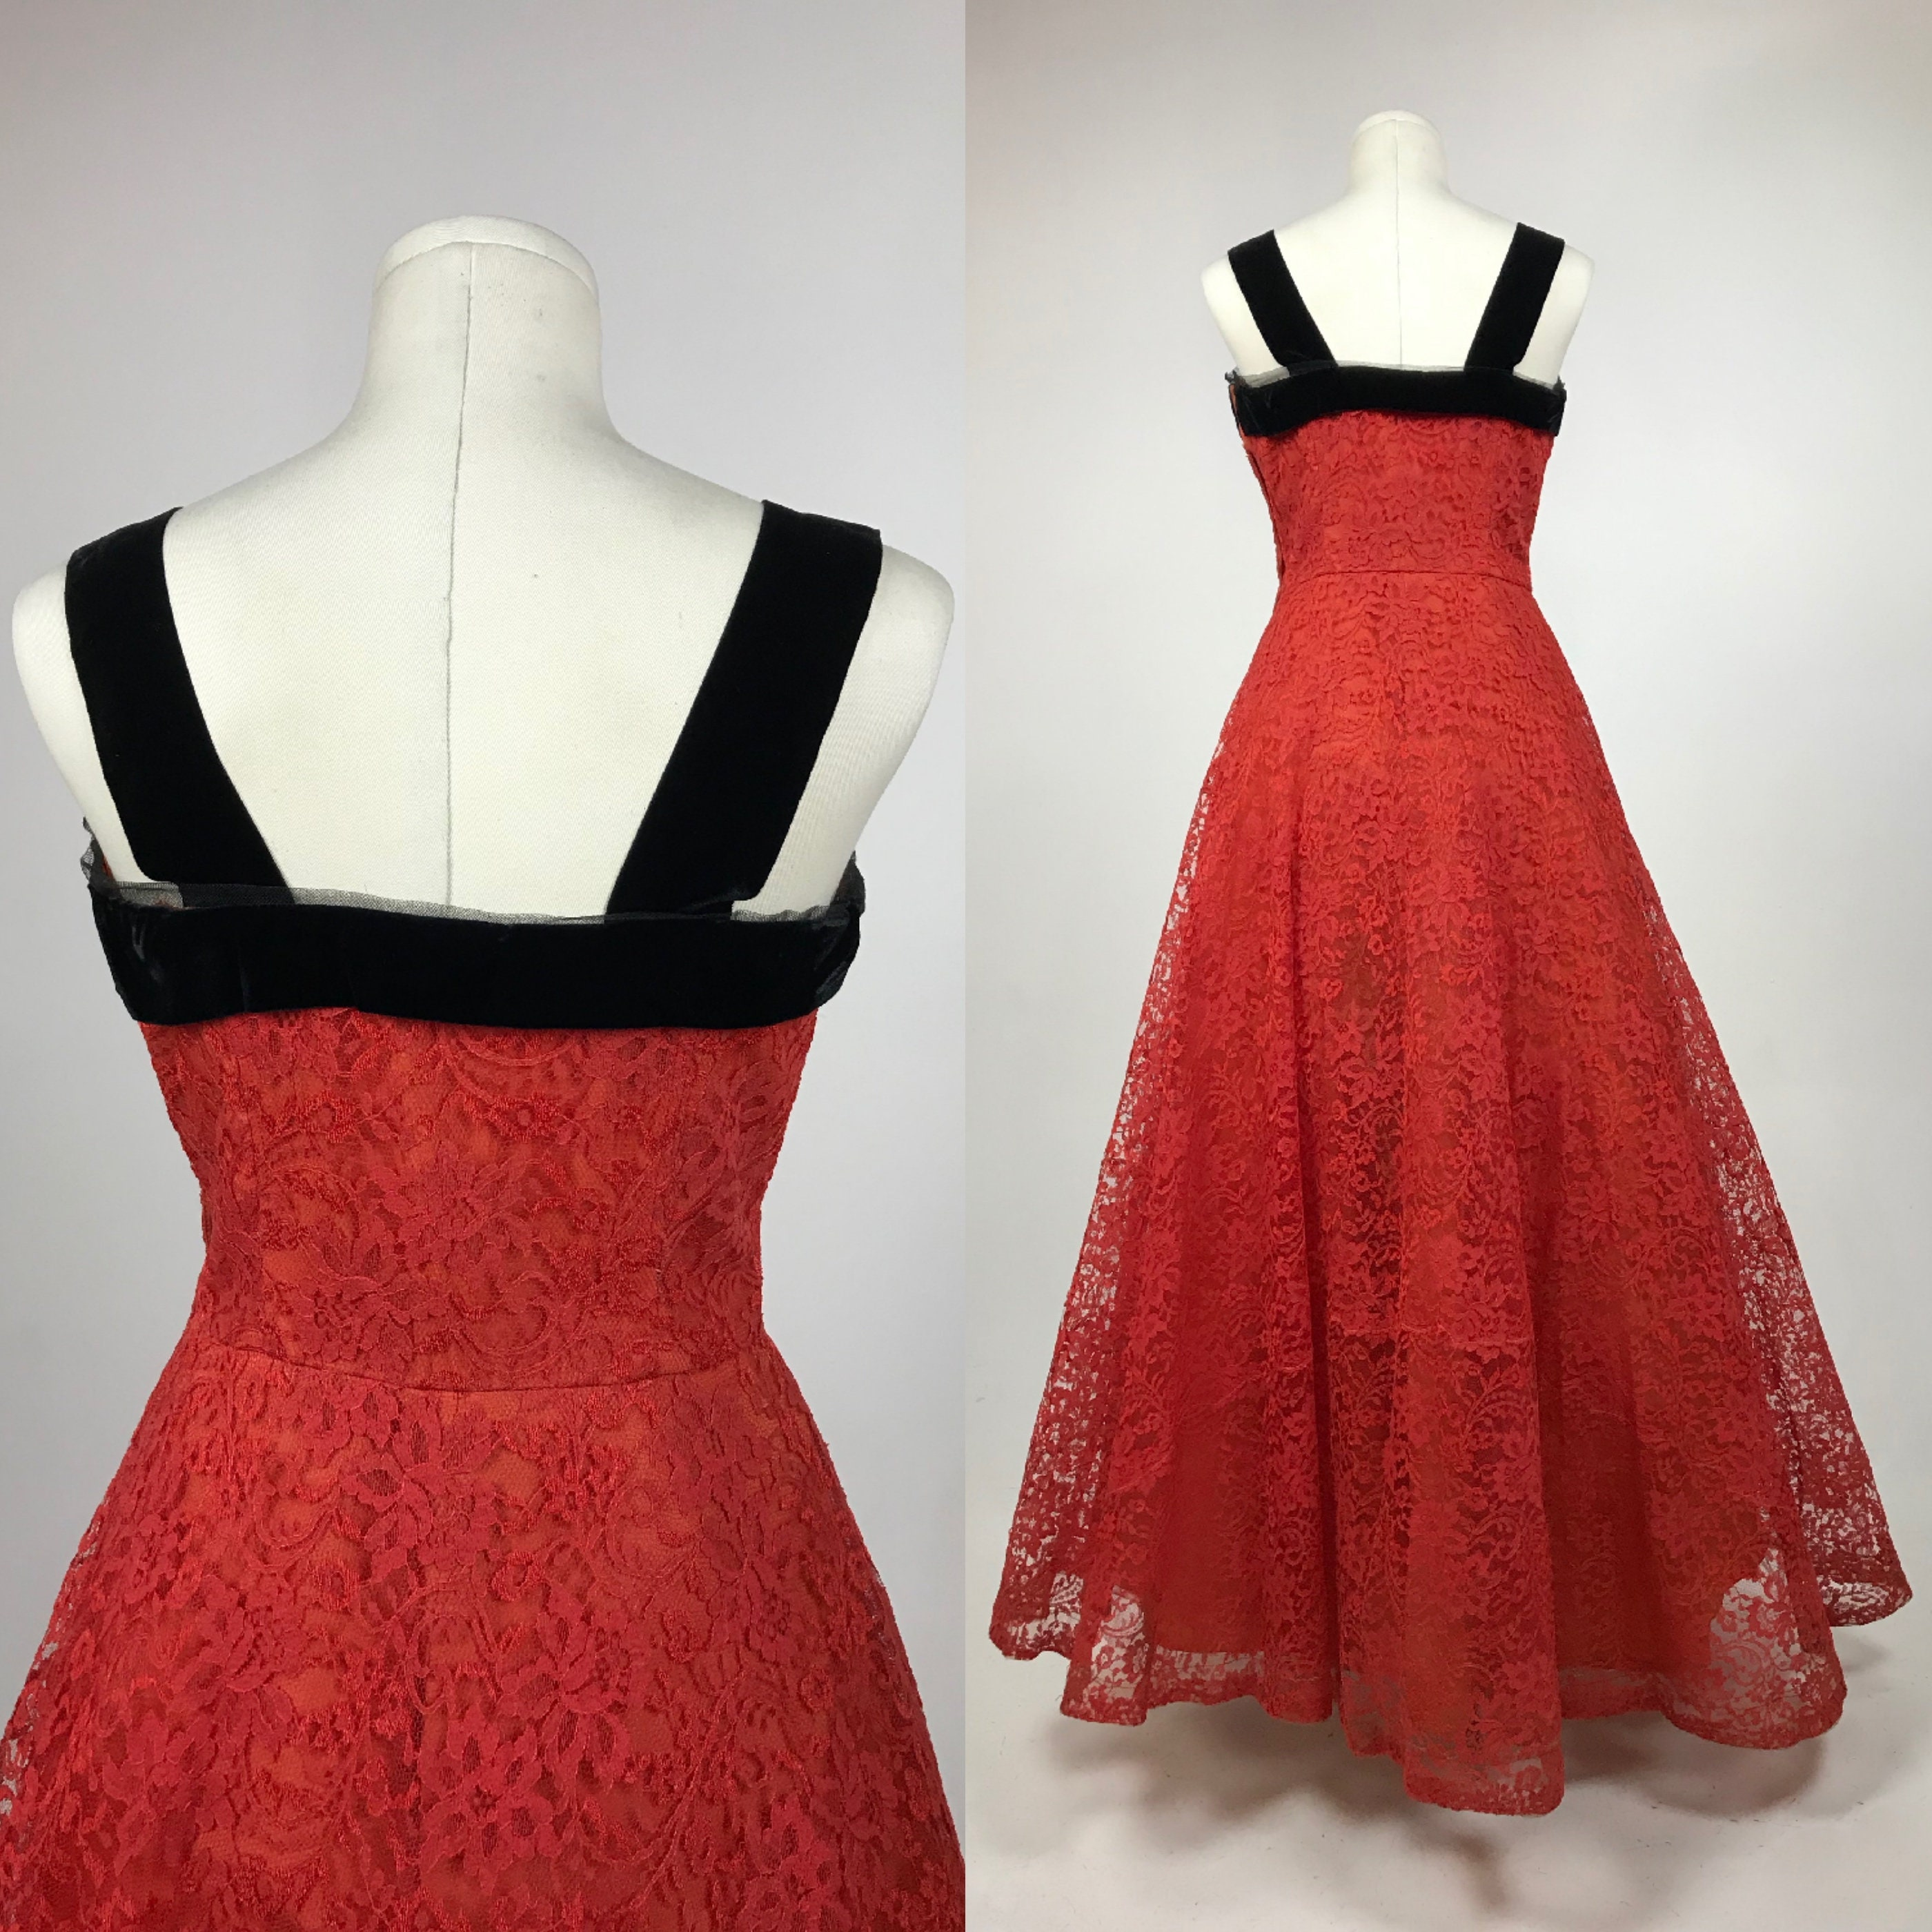 cdfad9d24 Vintage 1950 s Red Chantilly Lace Prom Dress - 50 s Red Wedding Gown ...